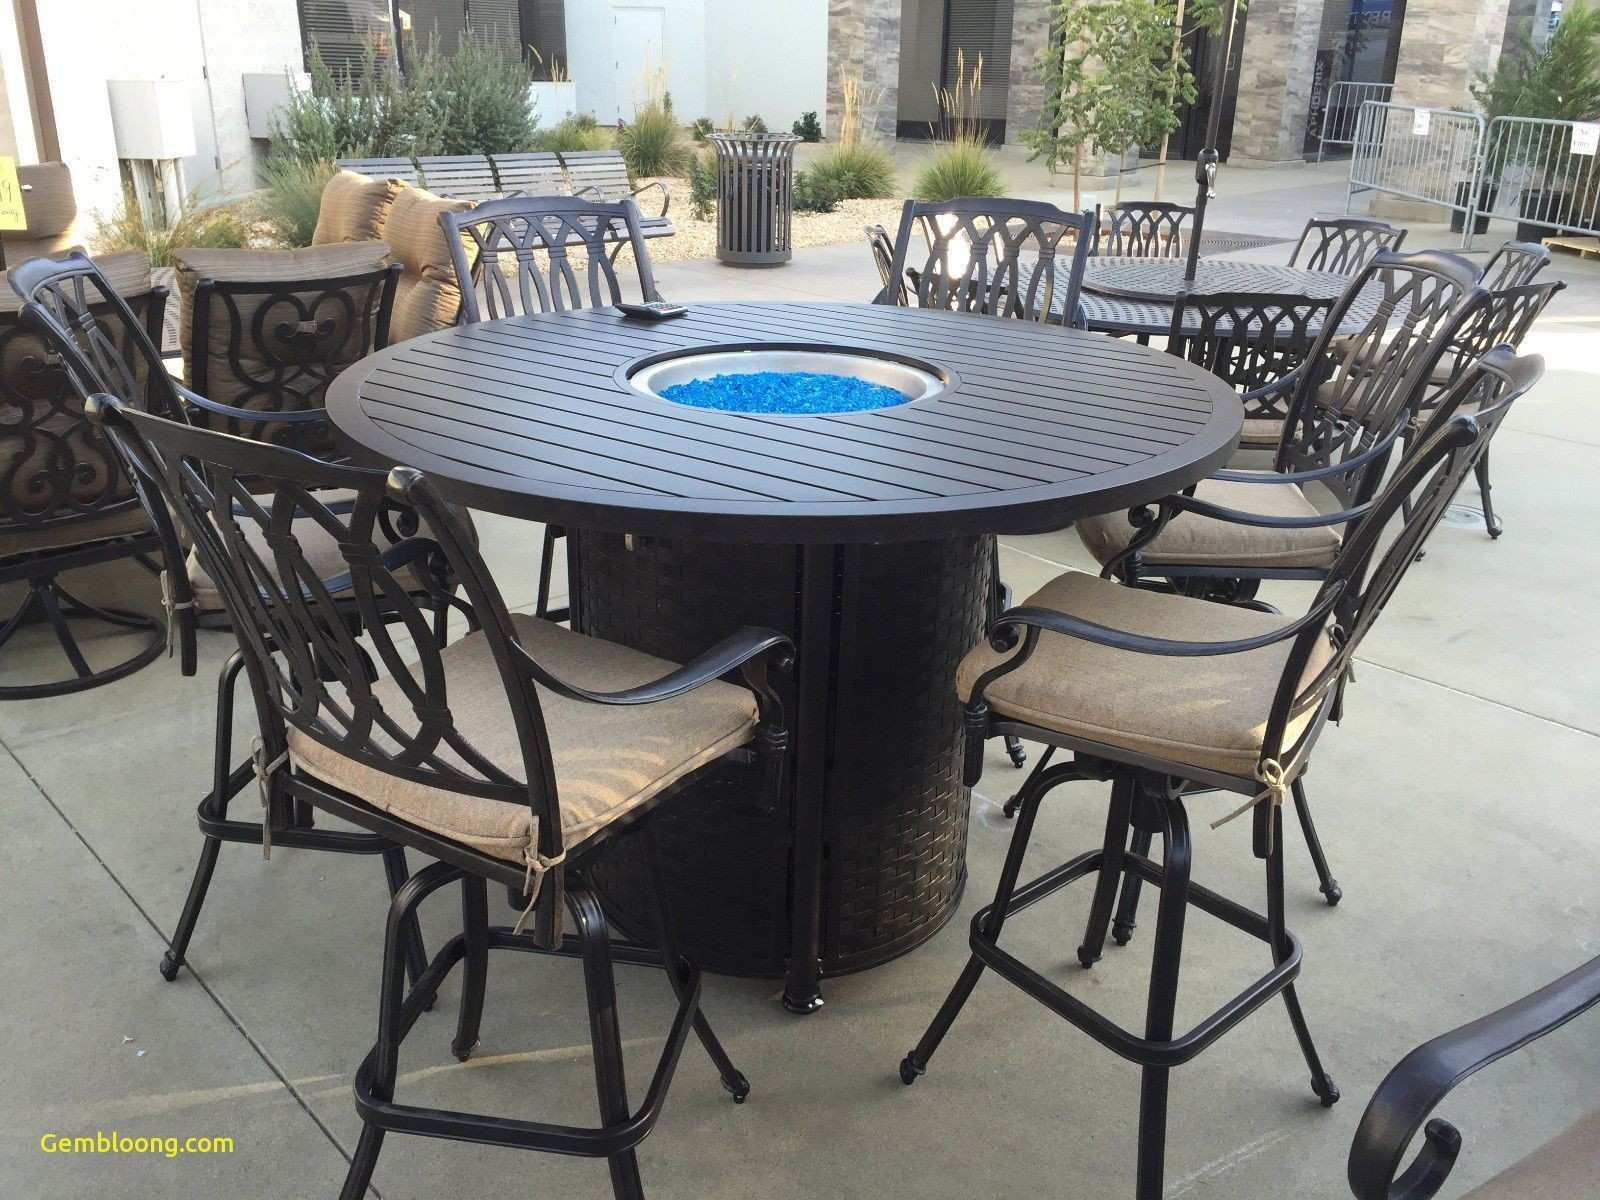 Home Design Bar And Stools For Sale Elegant Patio Bars For Sale